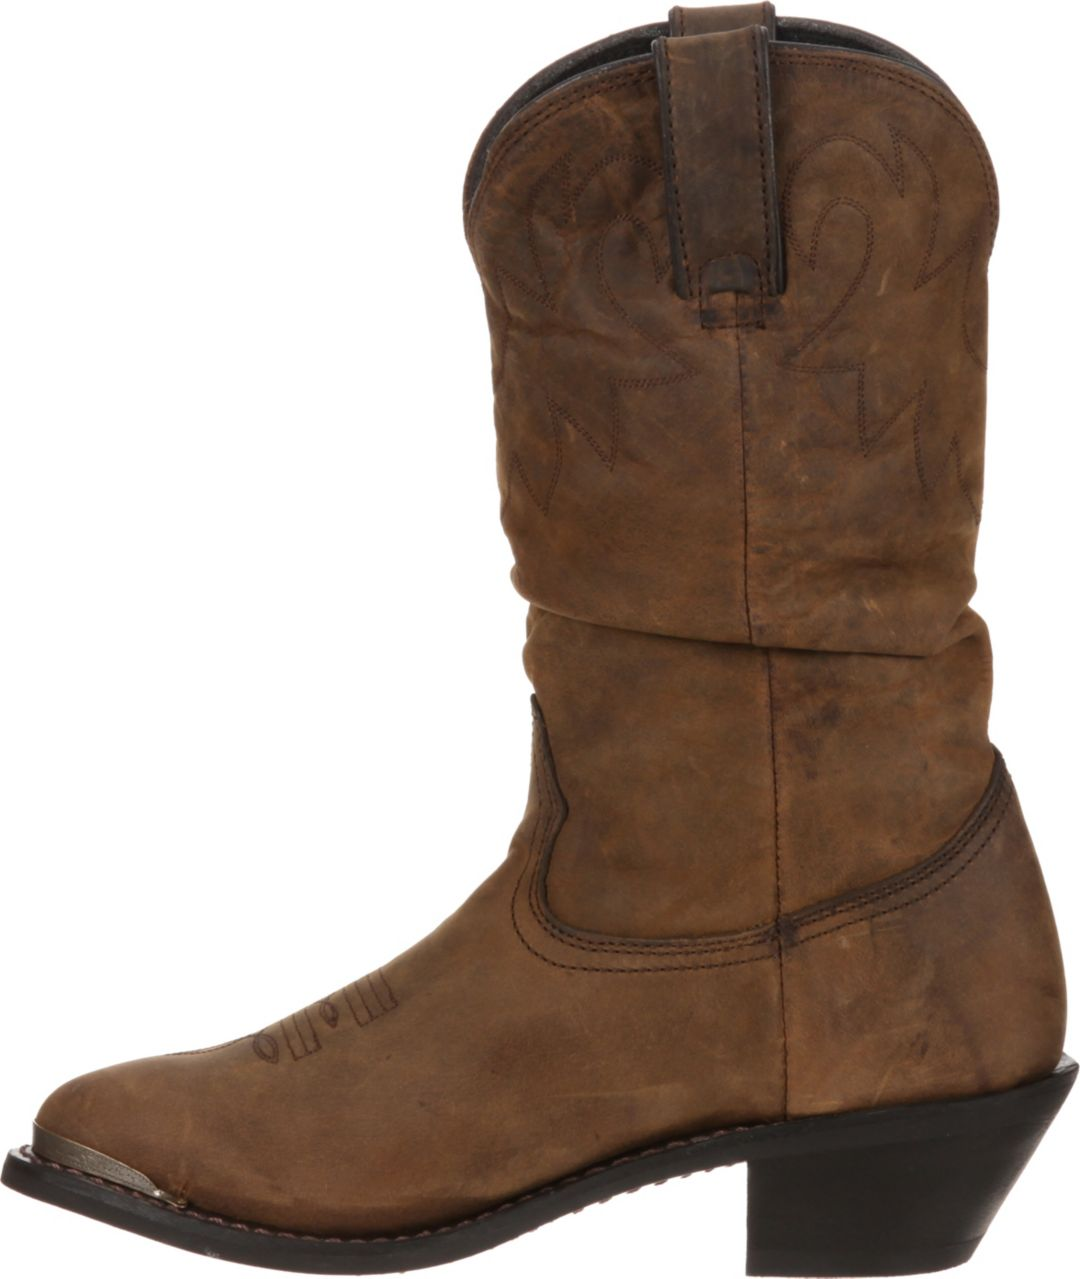 new lower prices hot-selling official durable in use Durango Women's Distressed Tan Slouch Western Boots